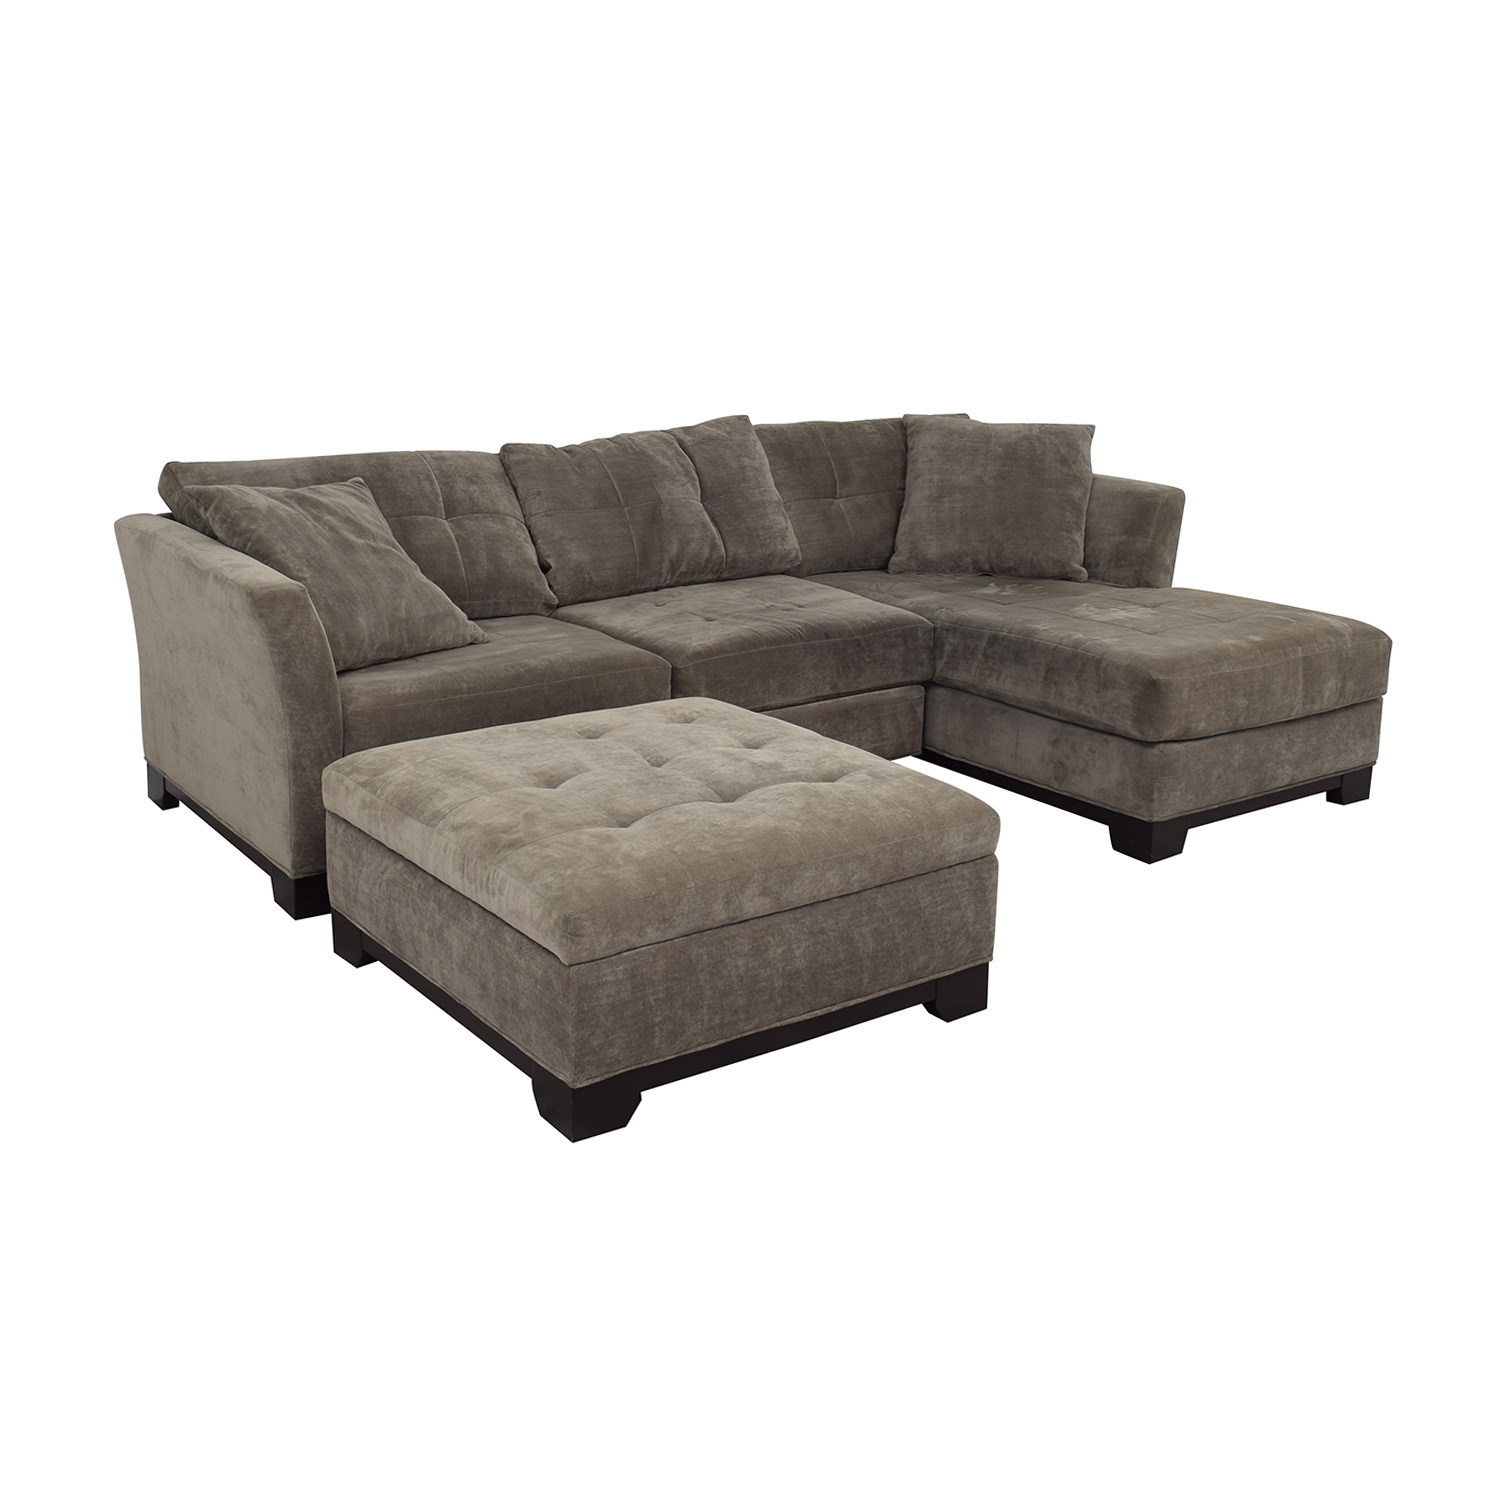 Macy's Macy's Furniture Chaise Couch with Ottoman for sale